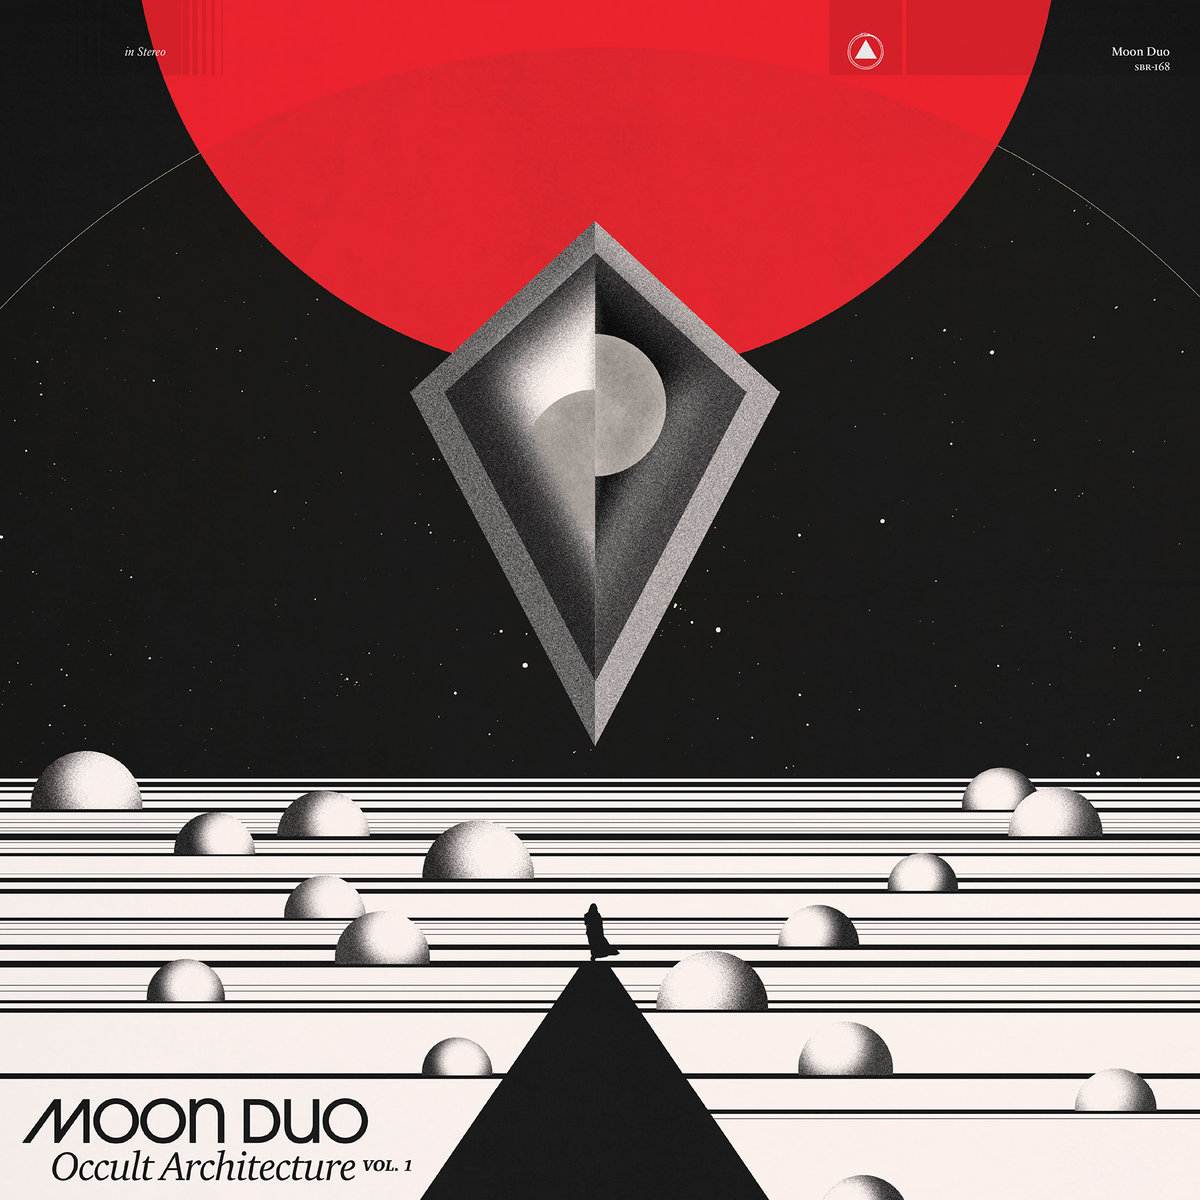 Moon Duo - 'Occult Architecture' album art